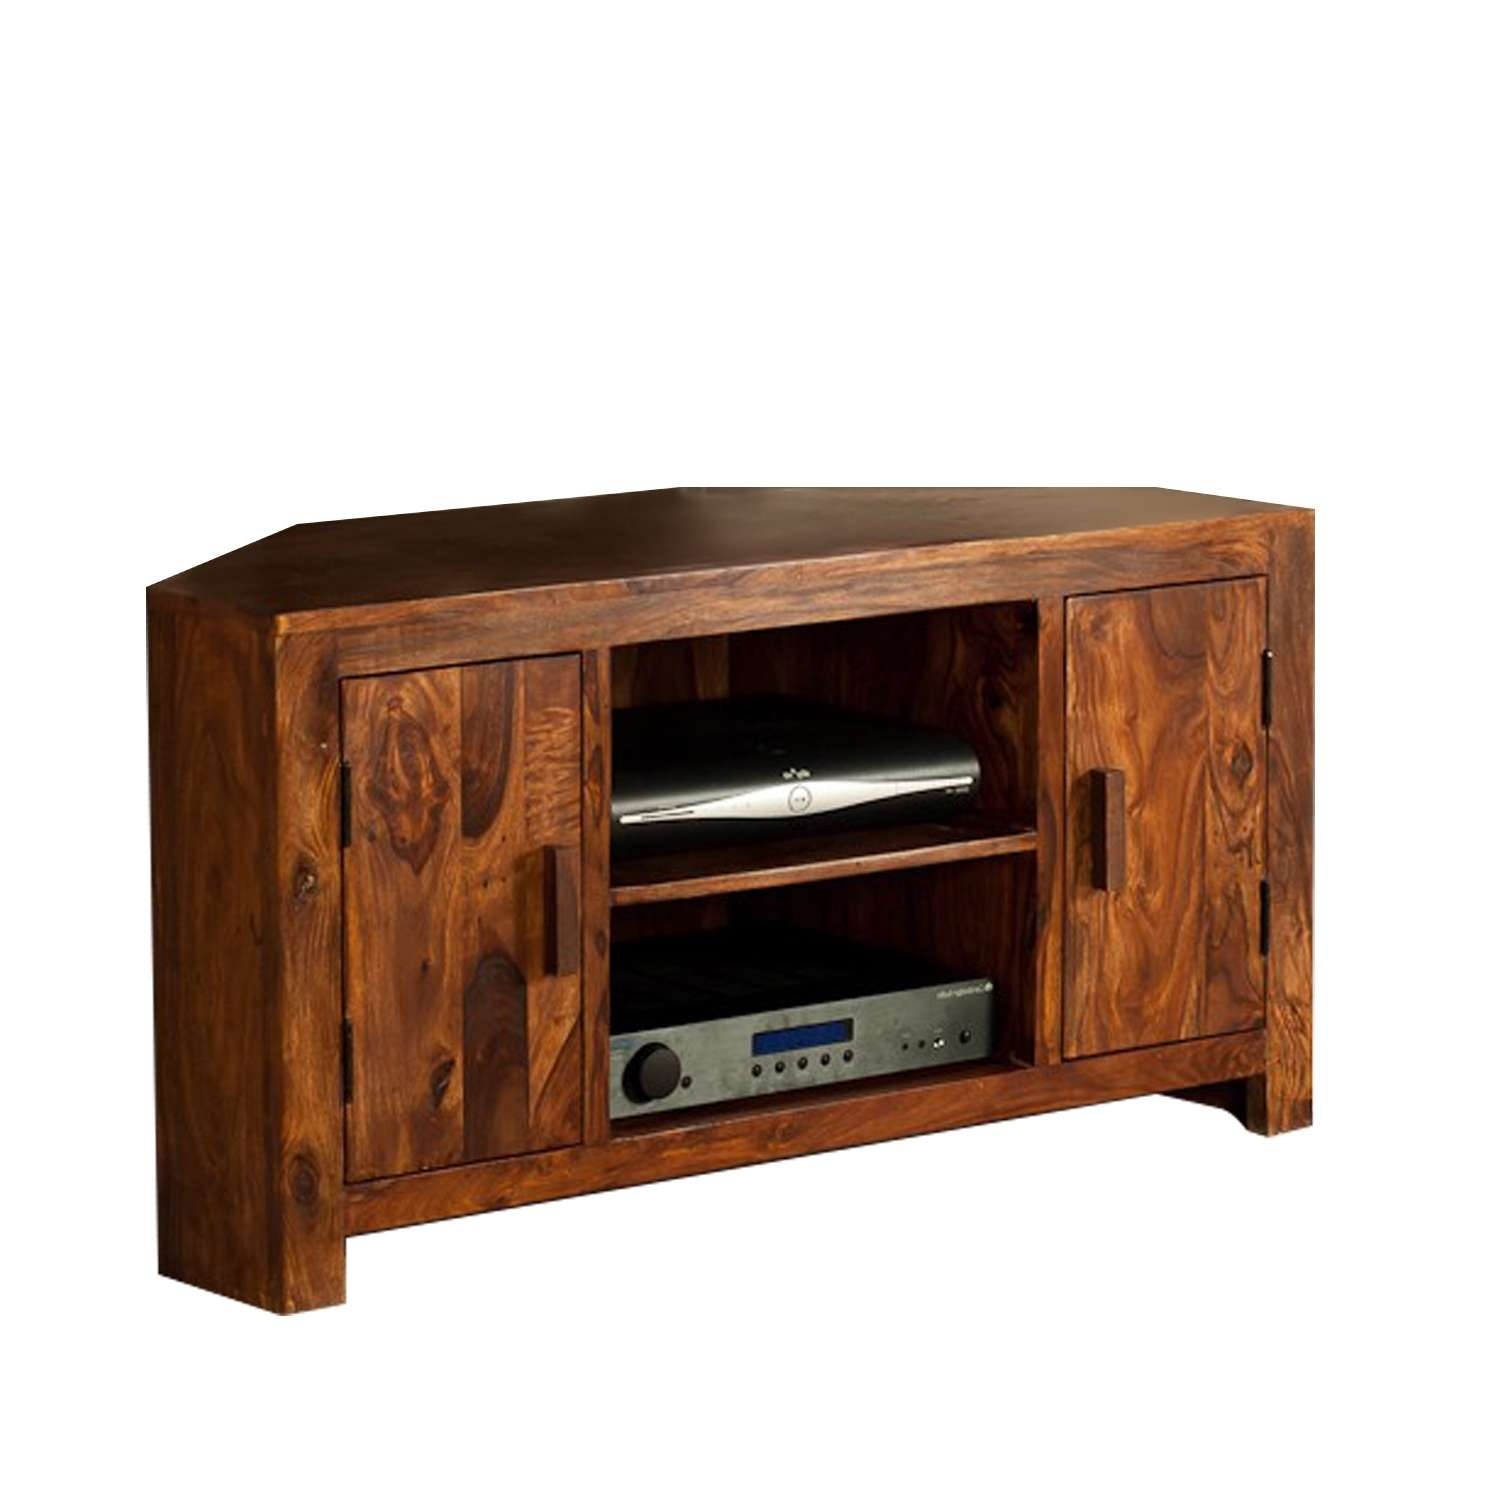 Corner Tv Stand In Sheesham Wood | The Yellow Door Store With Regard To Sheesham Wood Tv Stands (View 2 of 15)